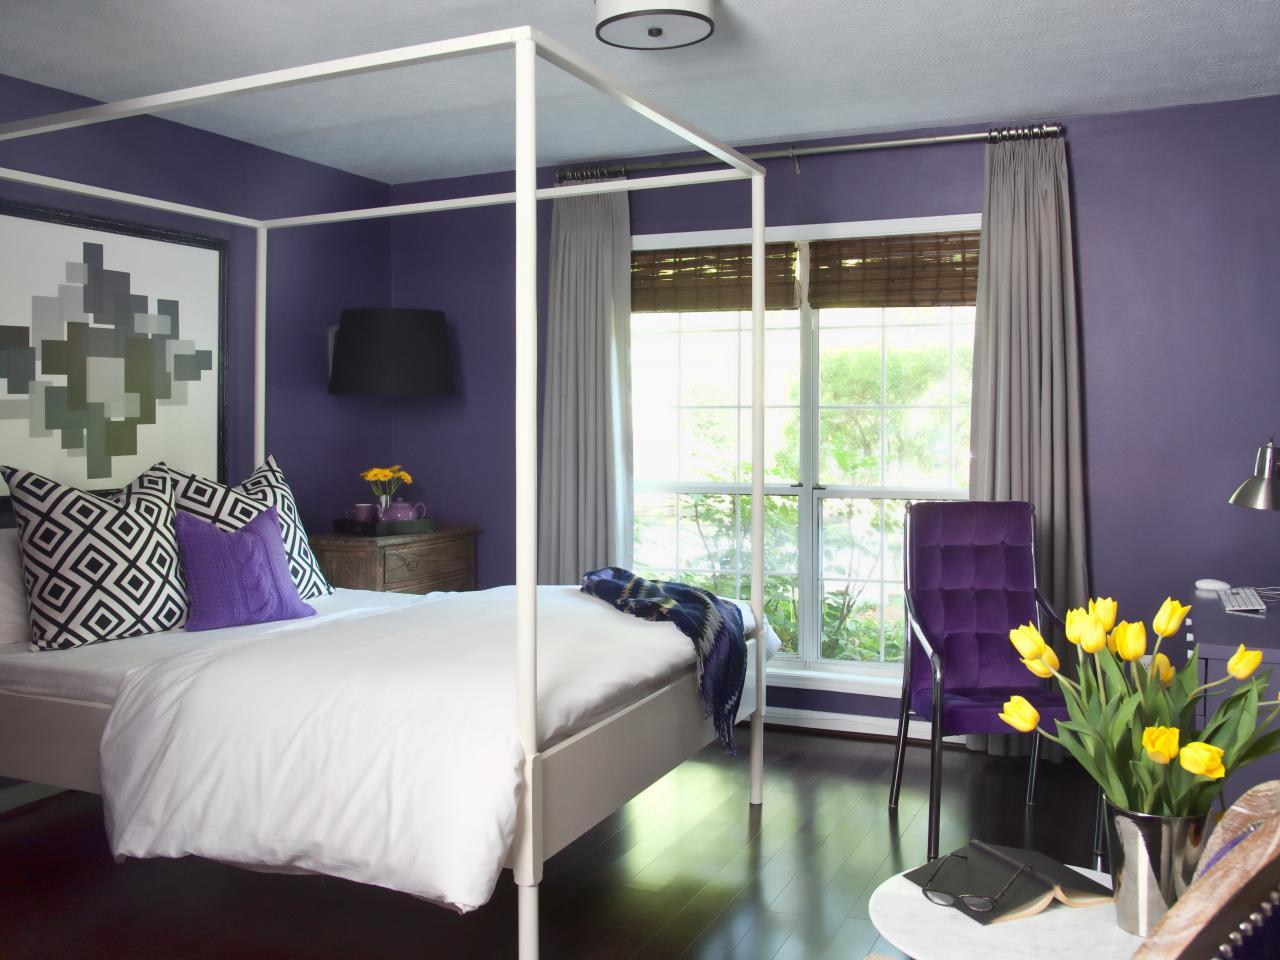 bedroom color combination images Master Bedroom Color Combinations: Pictures, Options & Ideas   HGTV 960 X 1280